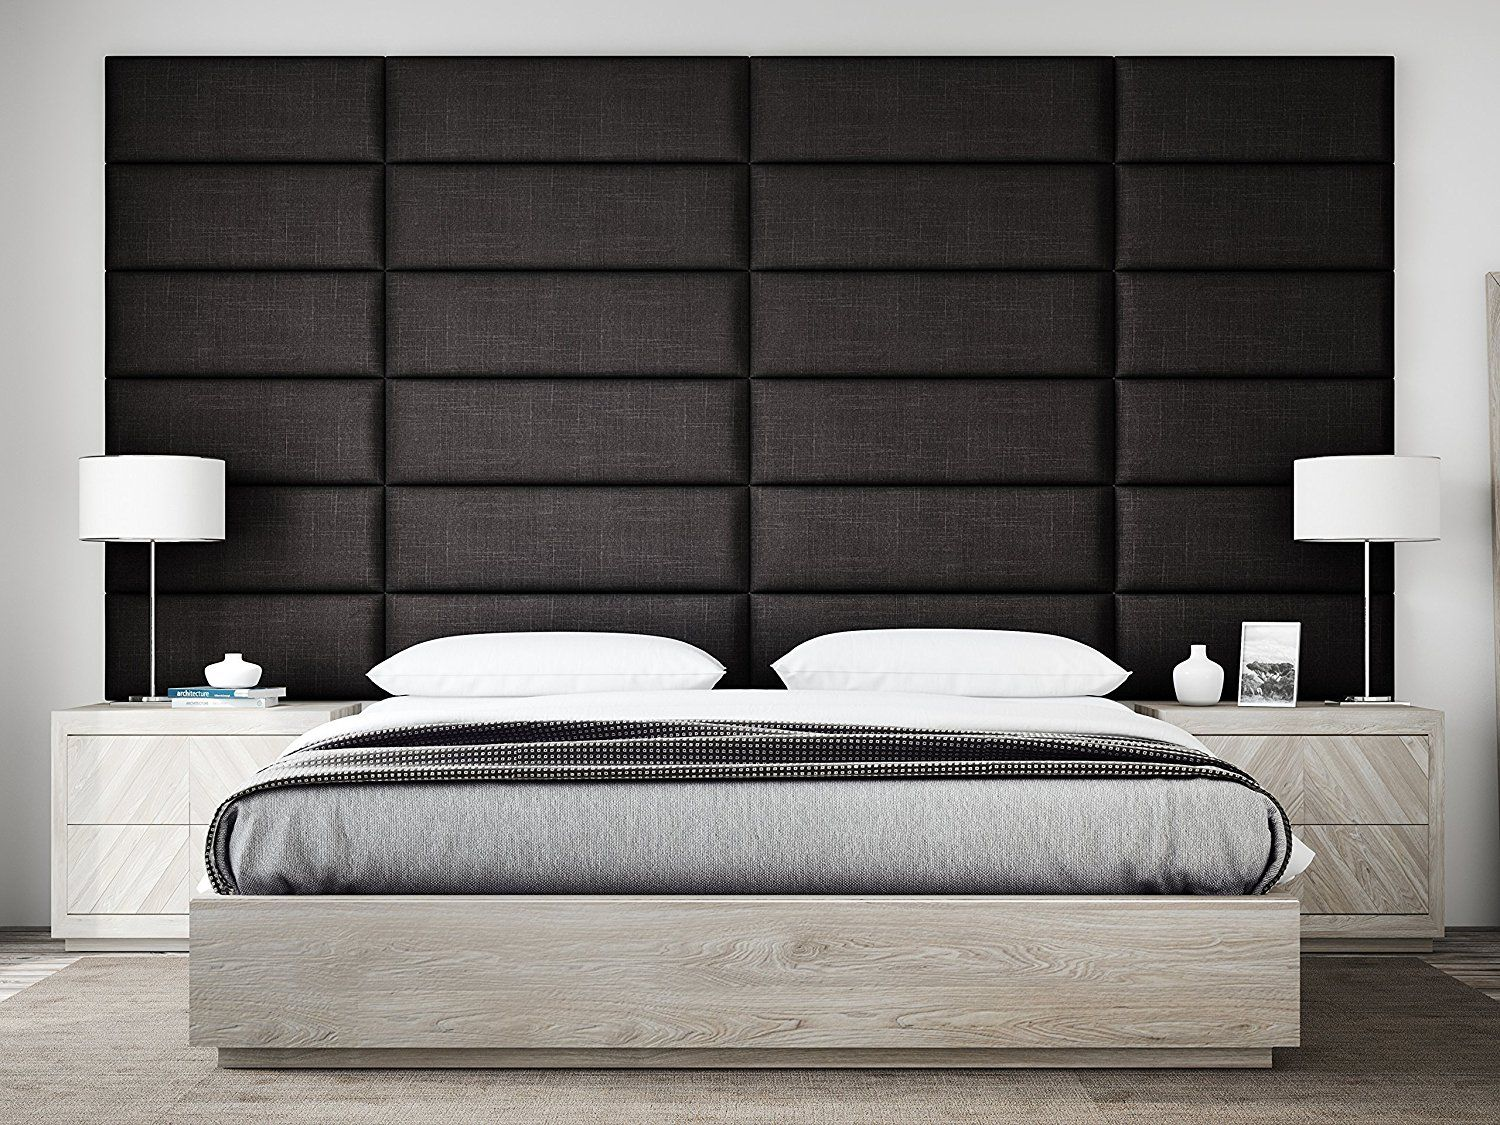 These Beautiful Upholstered Headboard Panels Can Be Used As A